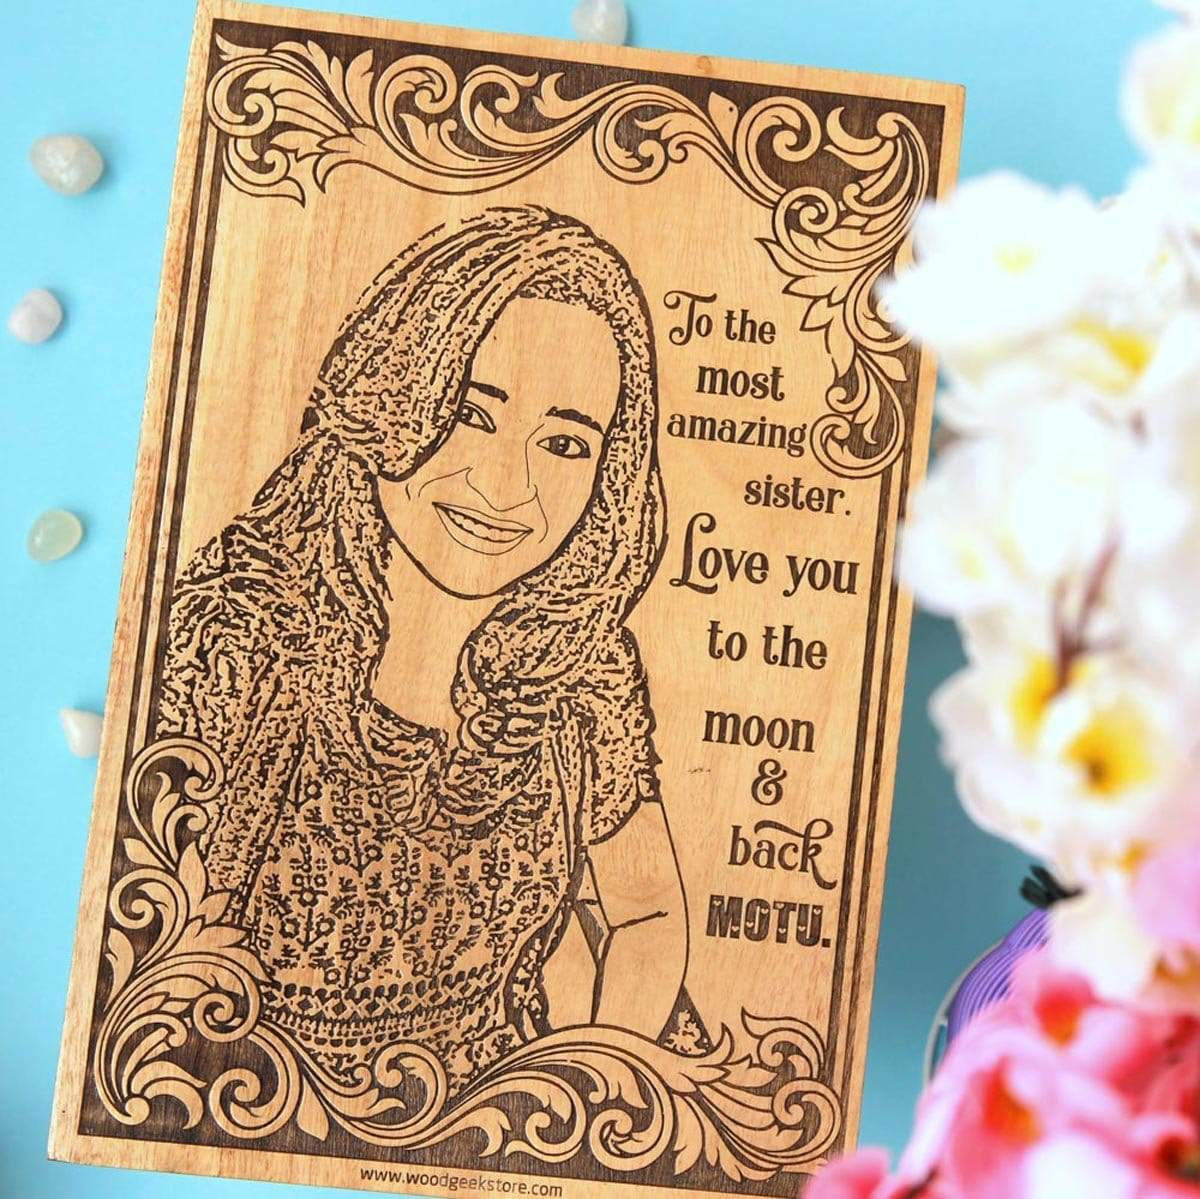 To The Most Amazing Sister. Love You To The Moon And Back. Looking for unique birthday gifts for your sister or rakhi gifts for her? This photo on wood will make the best gift for sister!